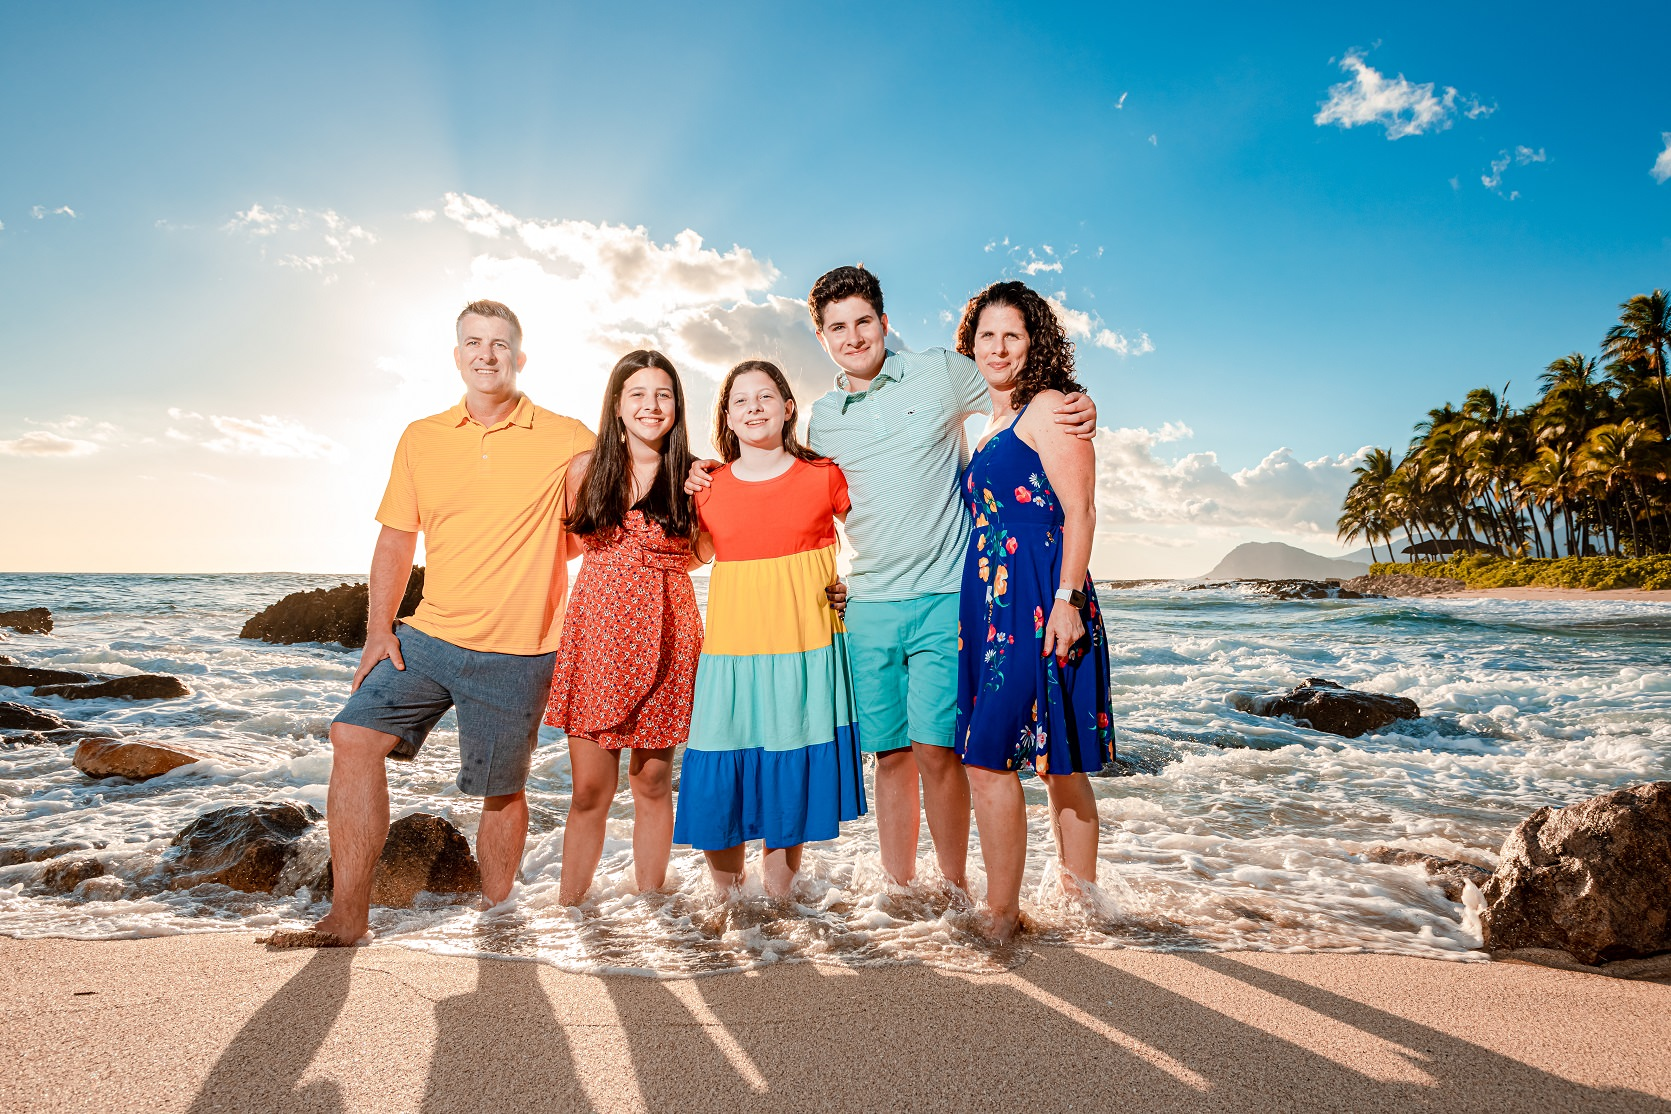 oahu family portrait photography session ko olina disney aulani sunset ocean beach